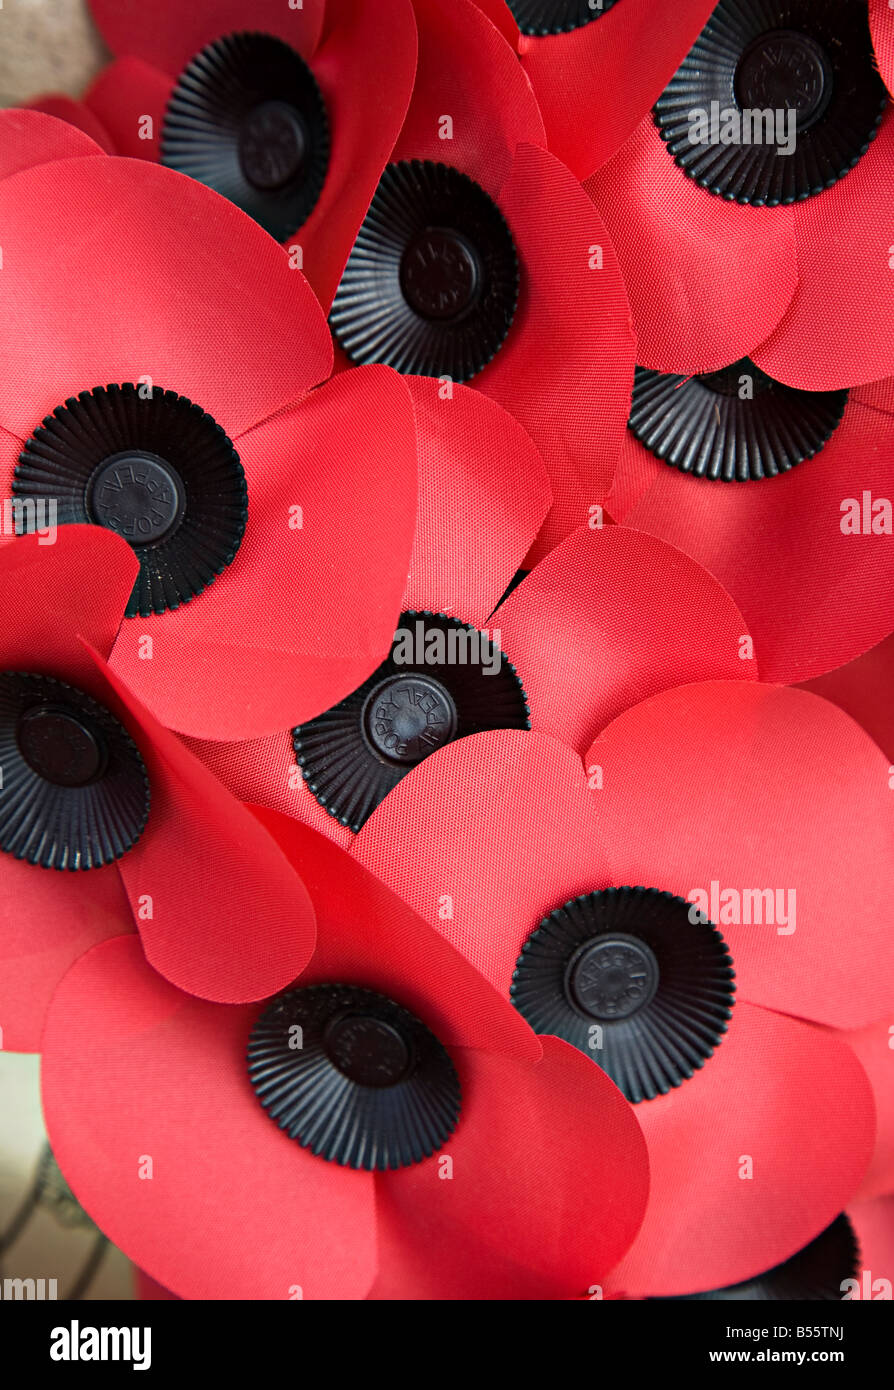 Poppy appeal poppies UK - Stock Image